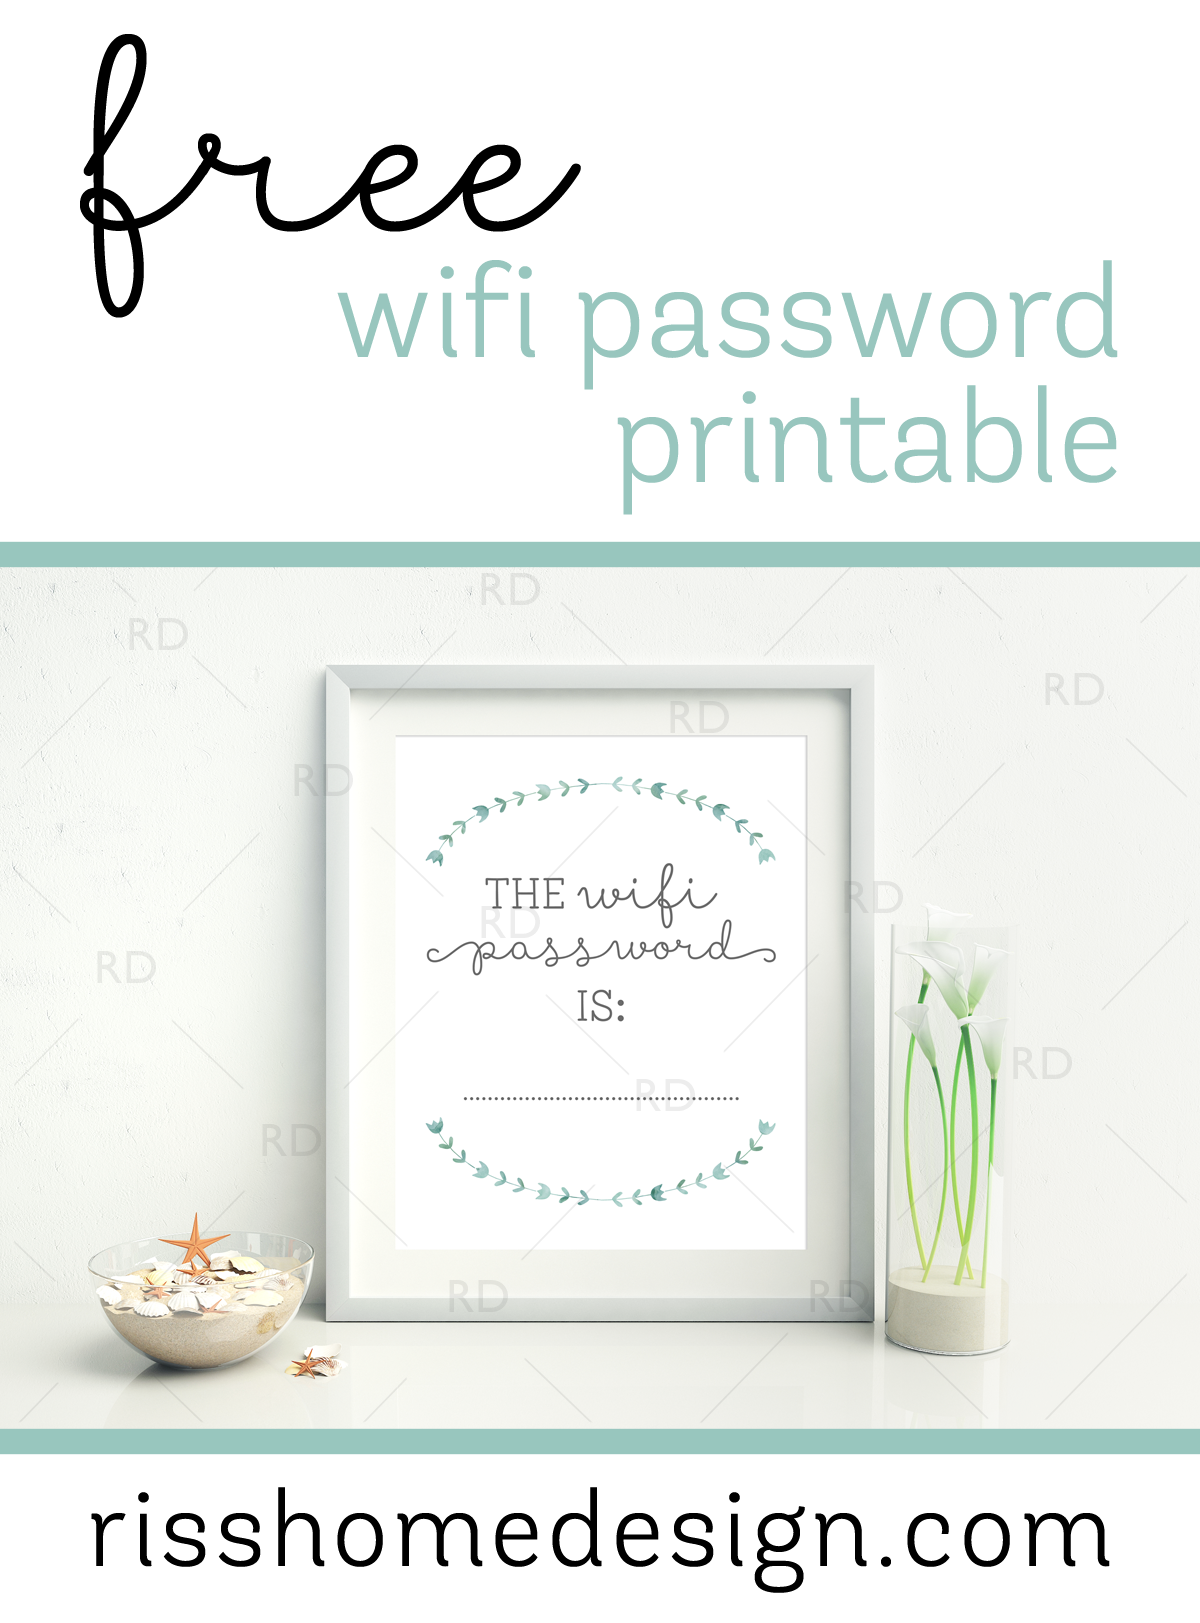 free wifi password printable for your home awesome to display in a guest room or living for. Black Bedroom Furniture Sets. Home Design Ideas